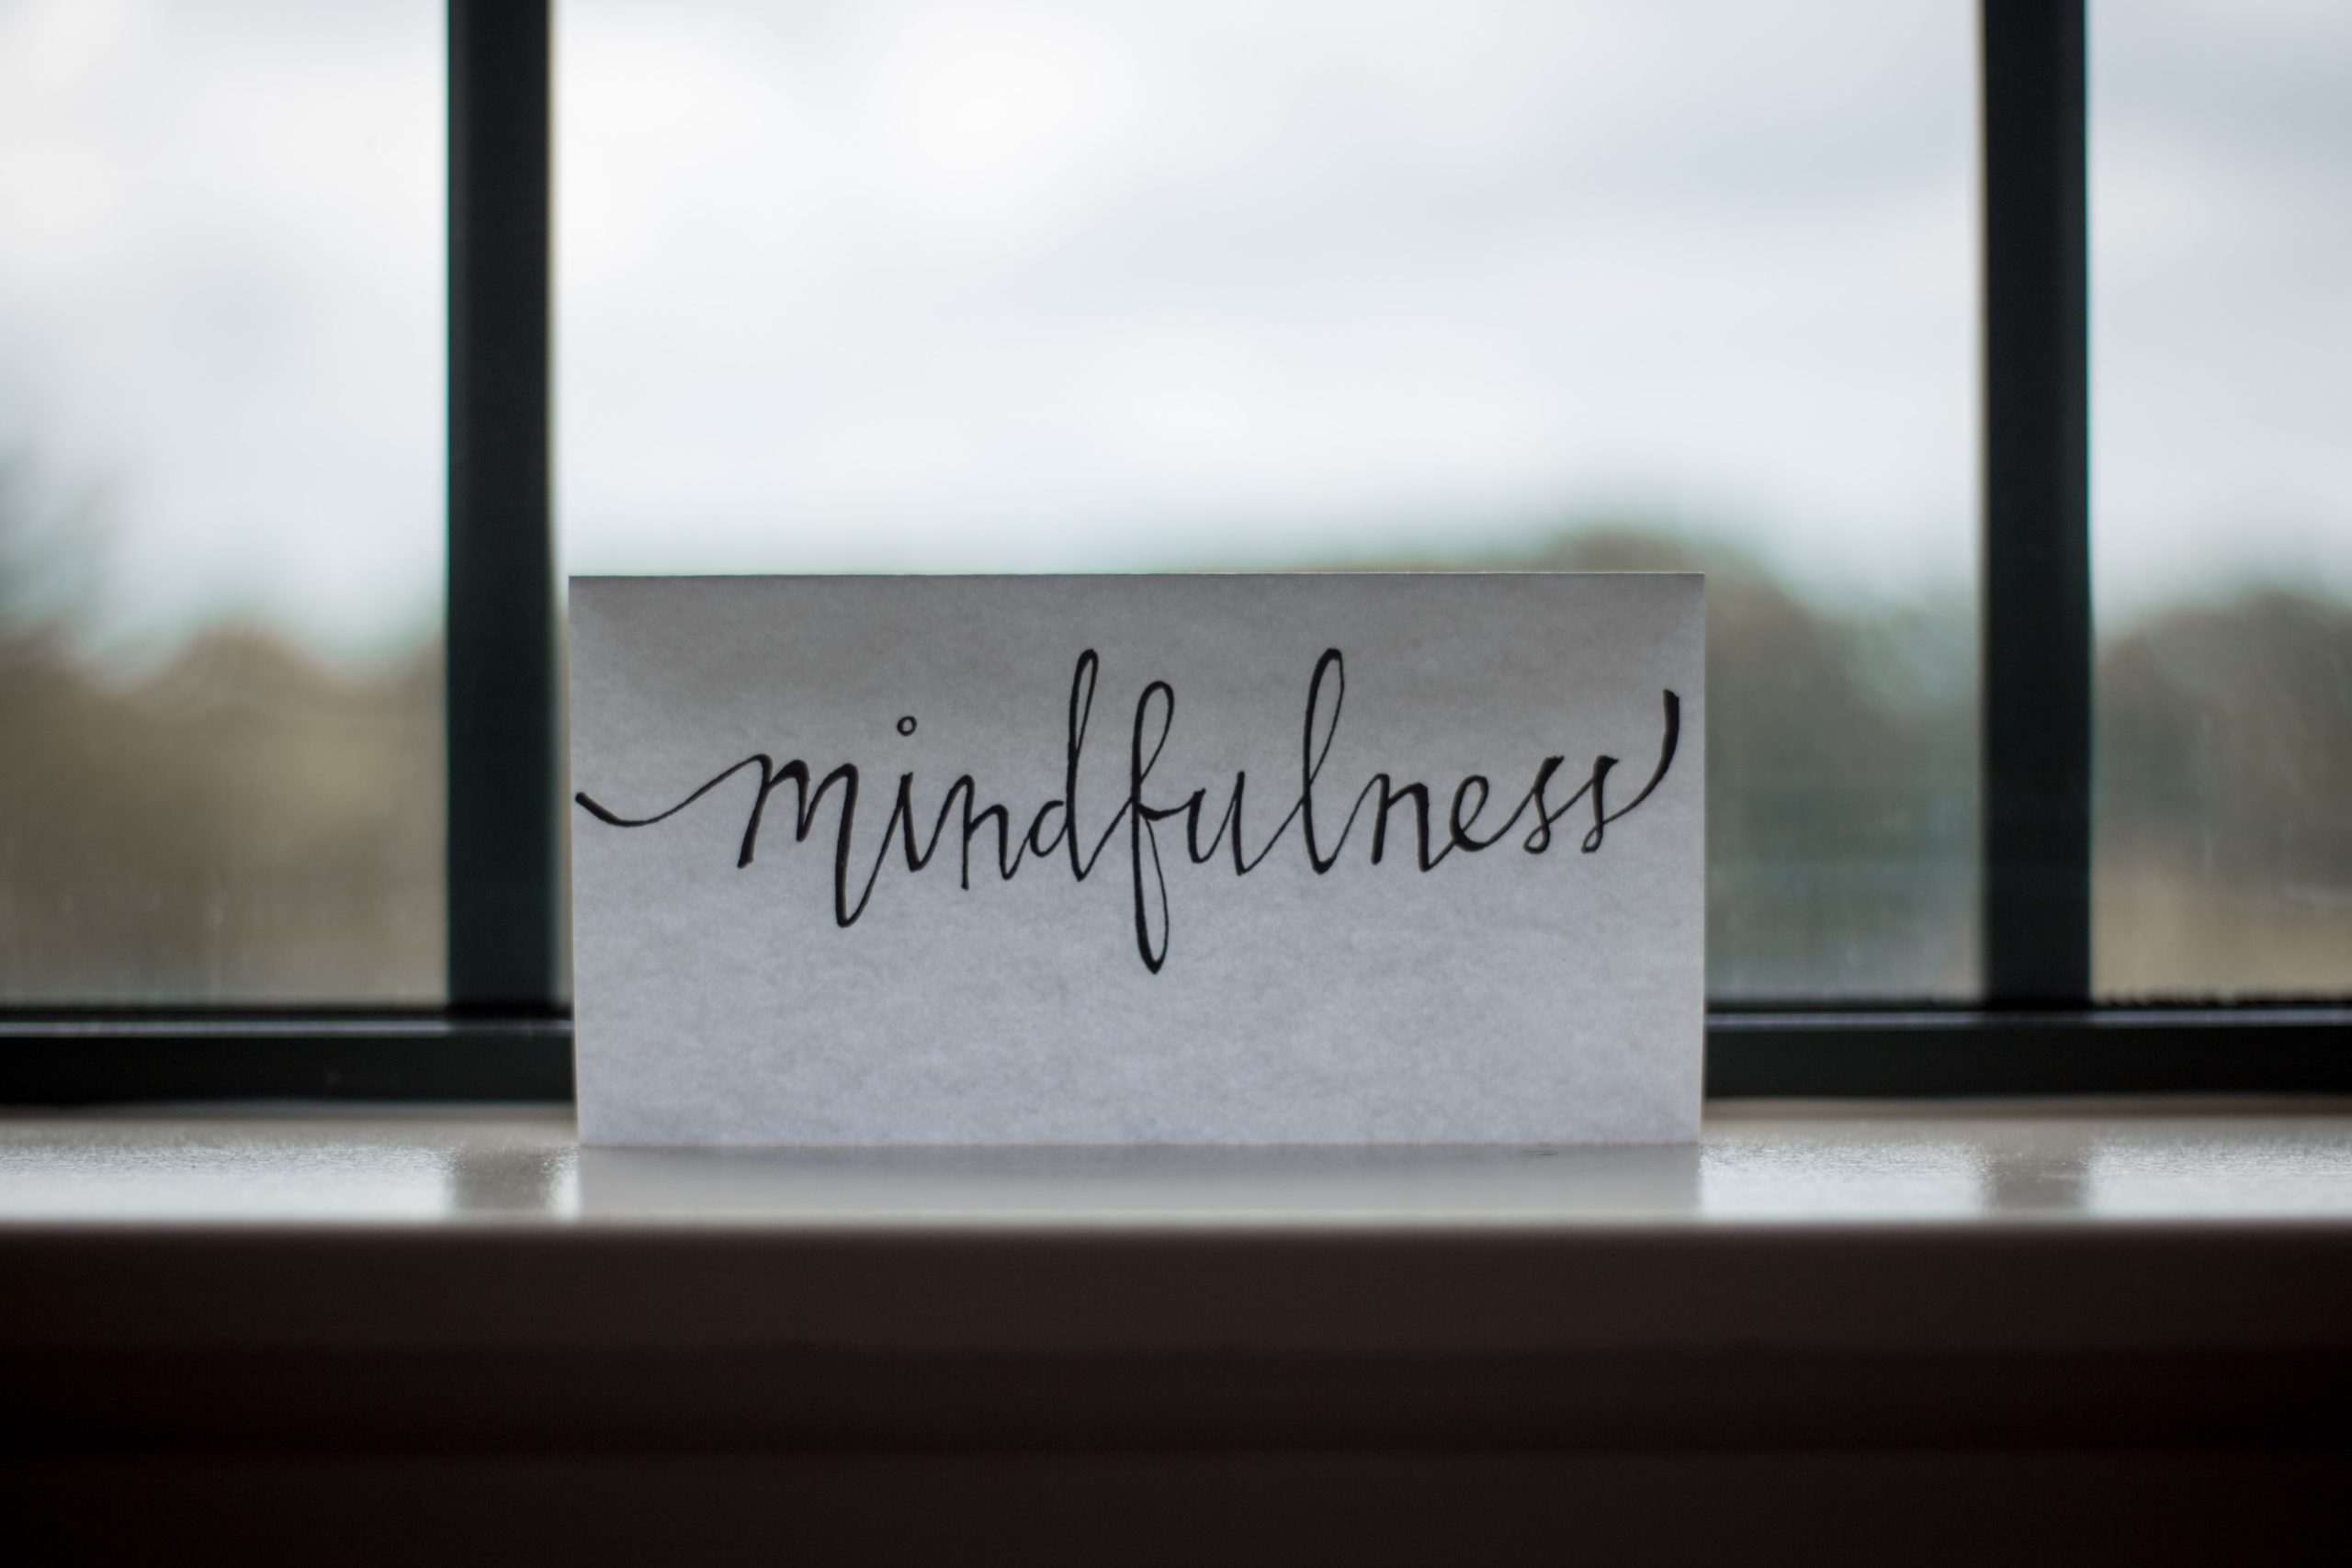 Free access to stress-busting resources from Headspace